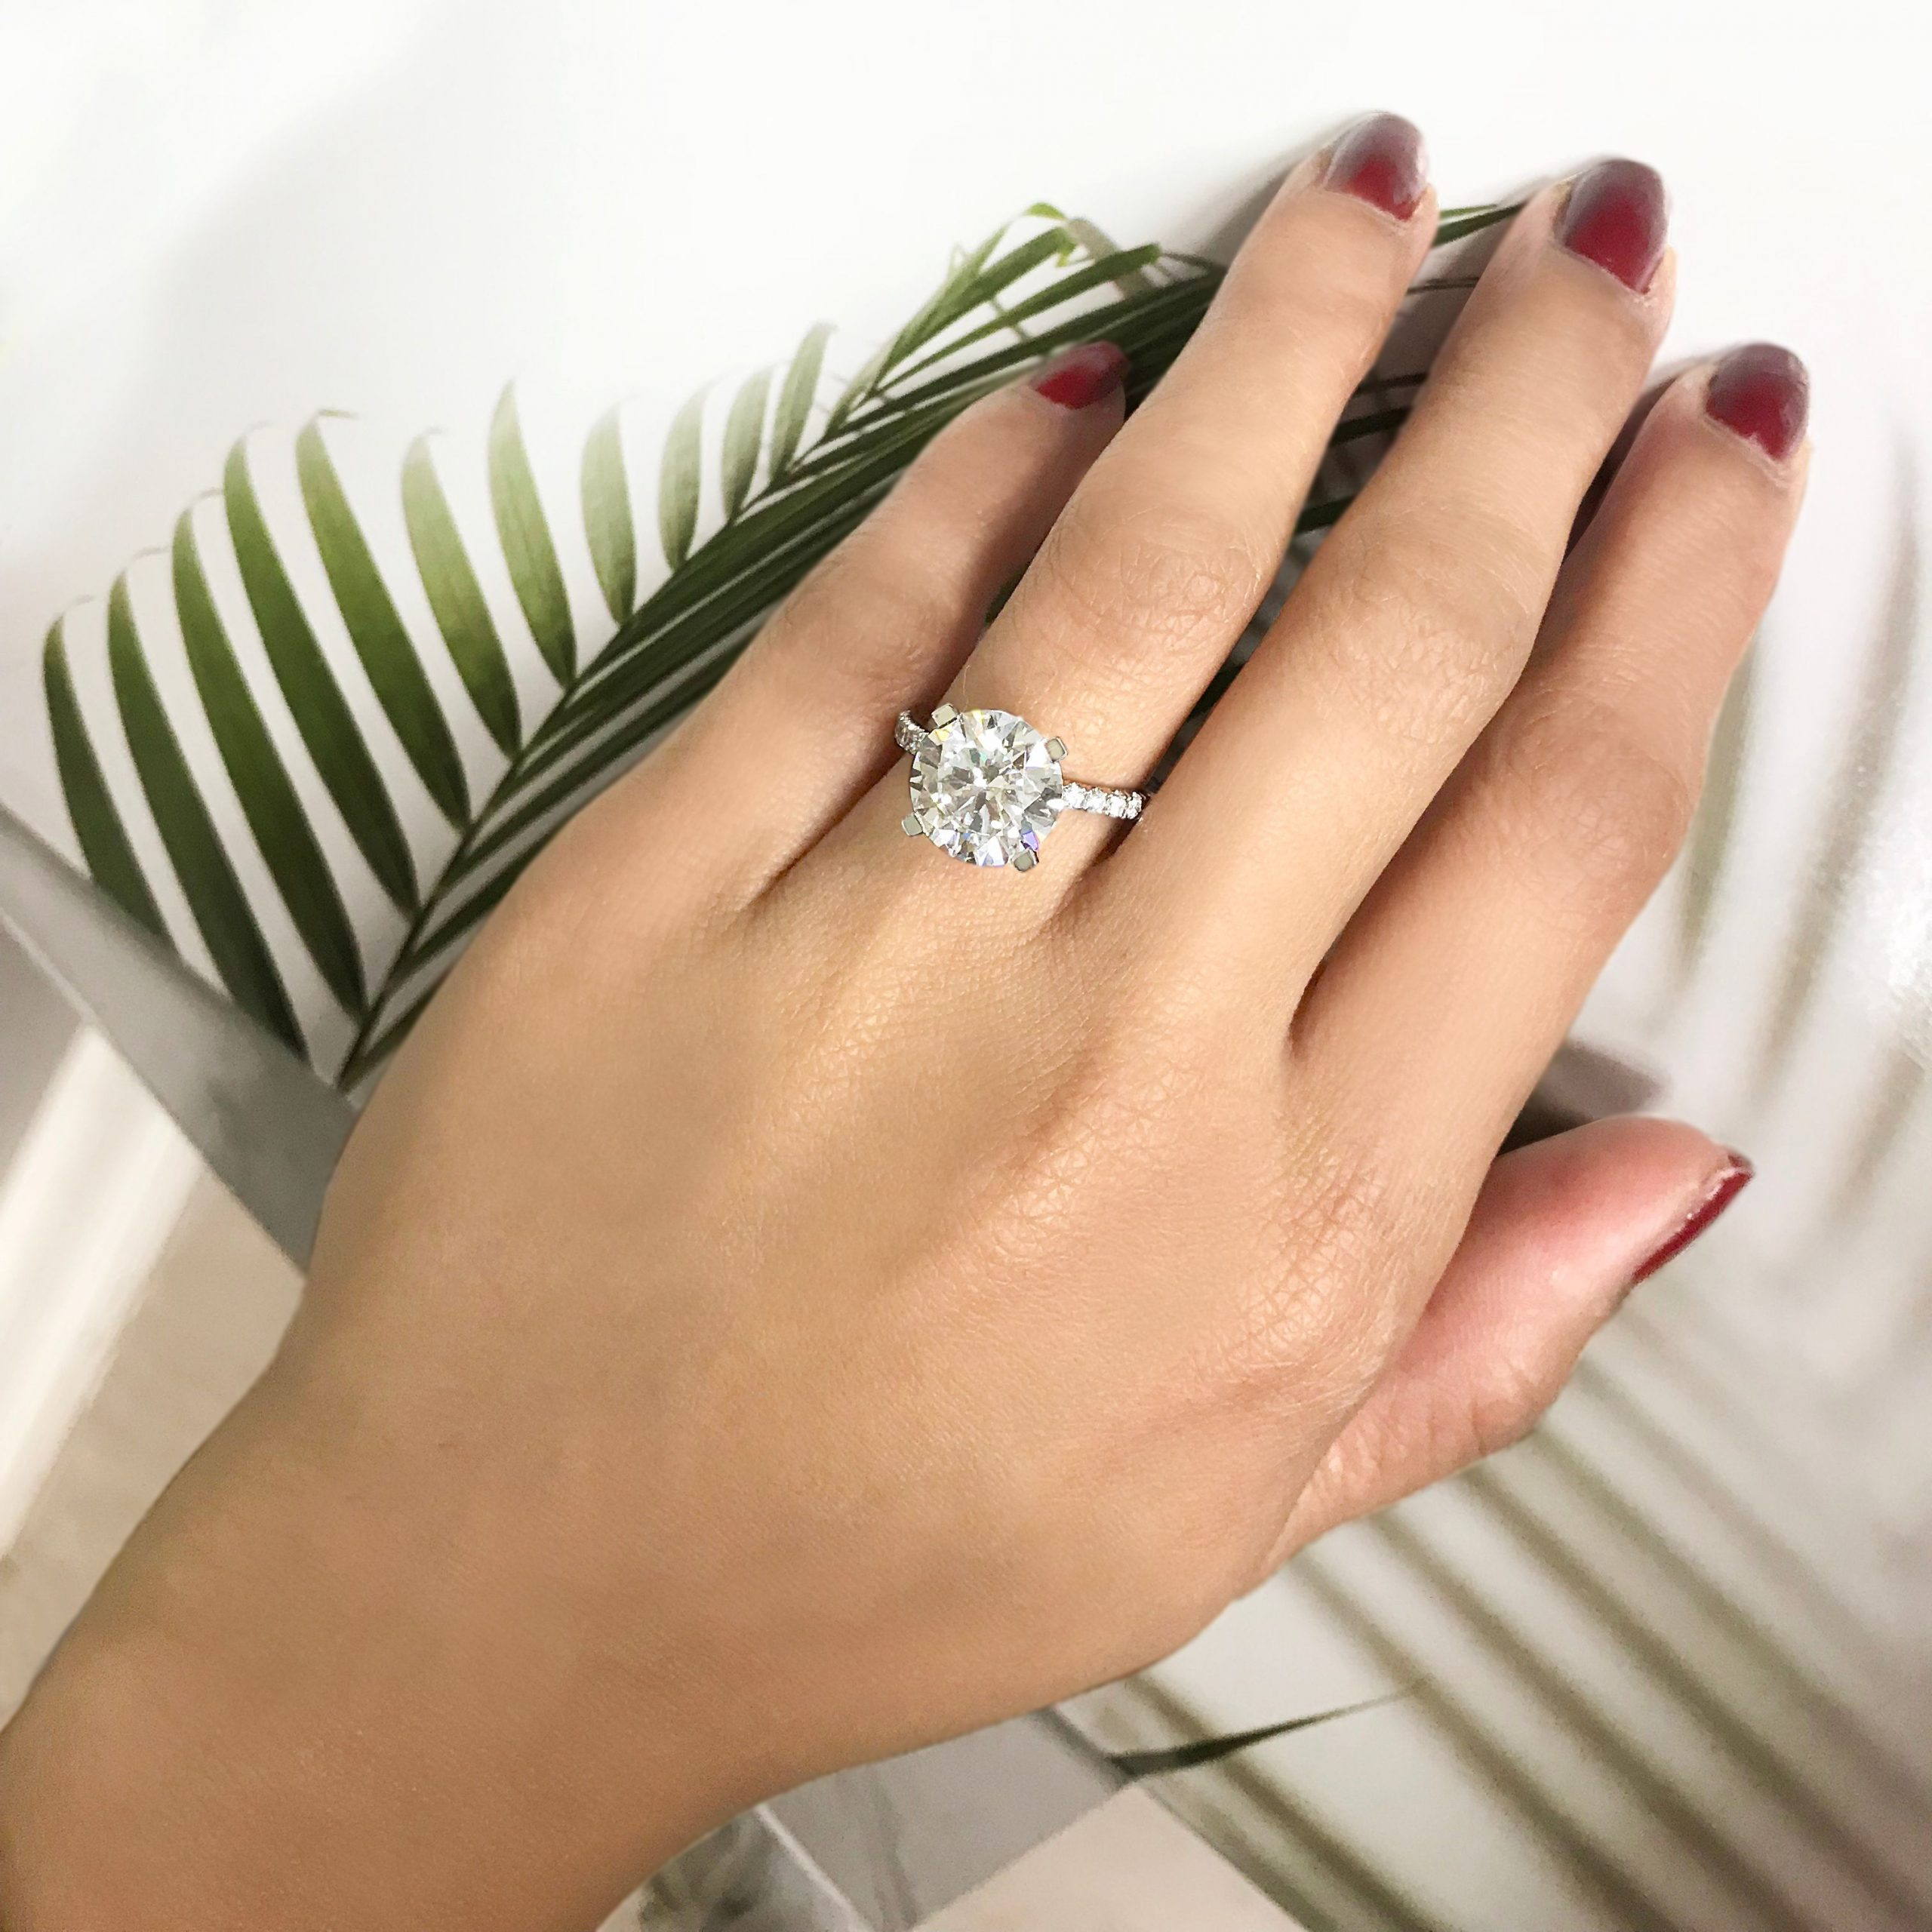 Manicure Ideas and Tips to Announce You're Newly Engaged: Engagement Ring Selfies